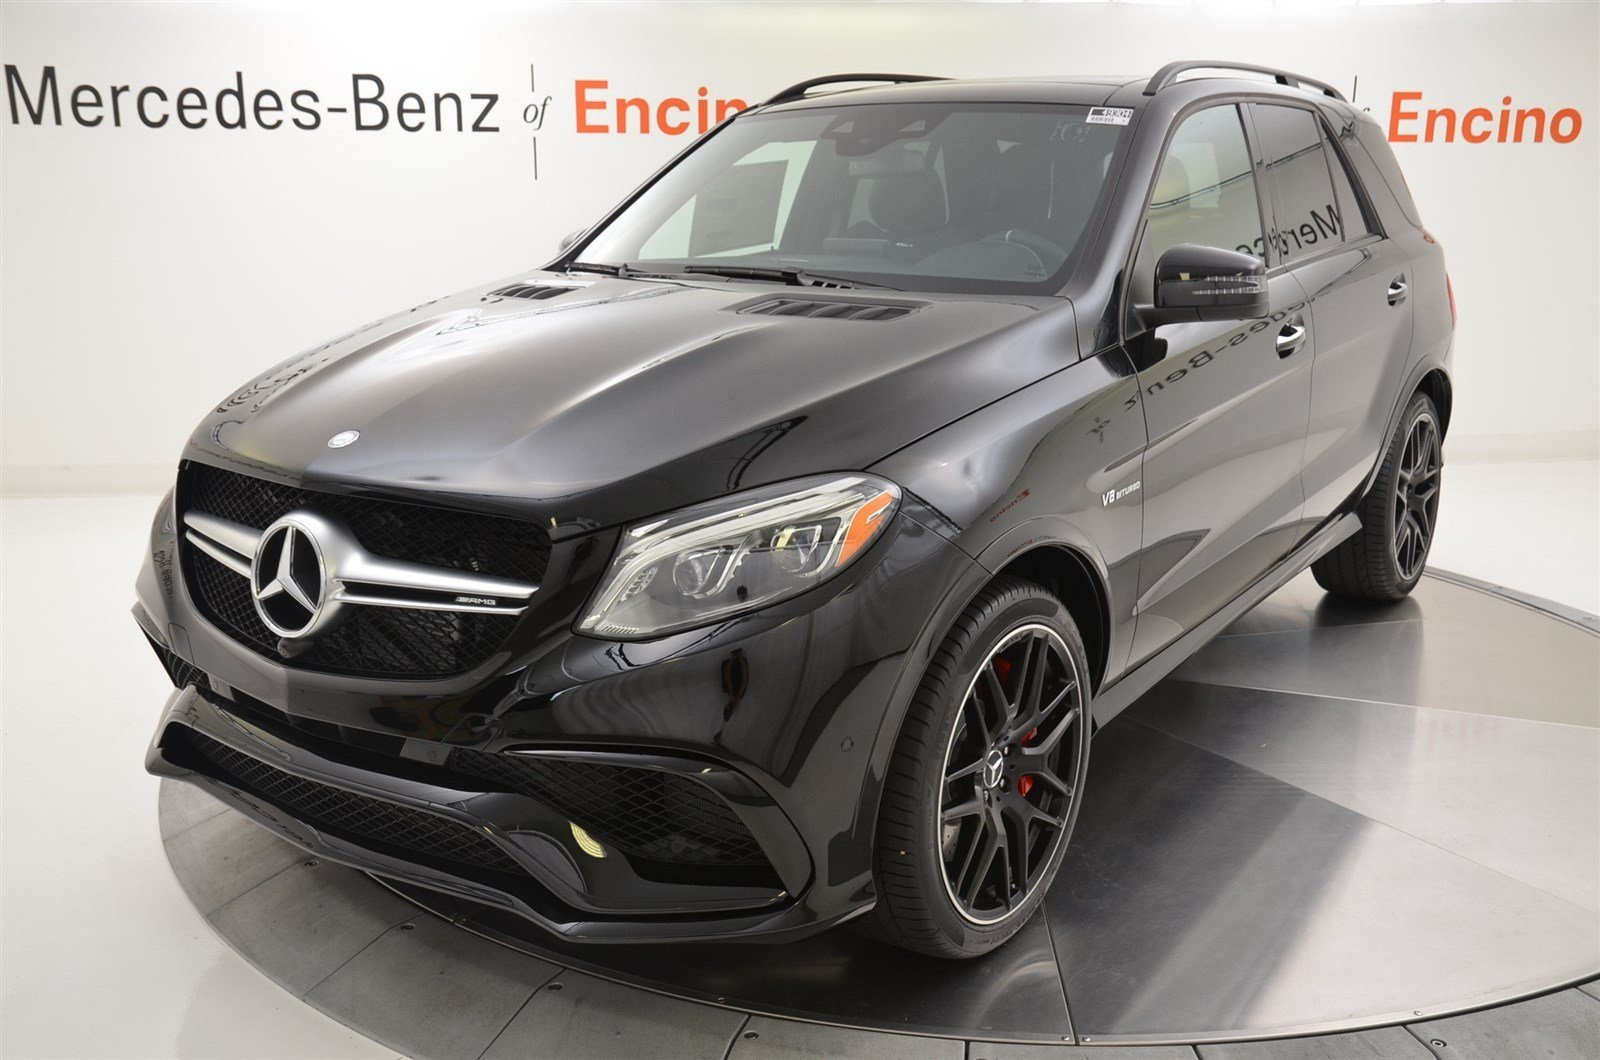 new 2016 mercedes benz gle gle 63 s amg suv suv in encino. Black Bedroom Furniture Sets. Home Design Ideas